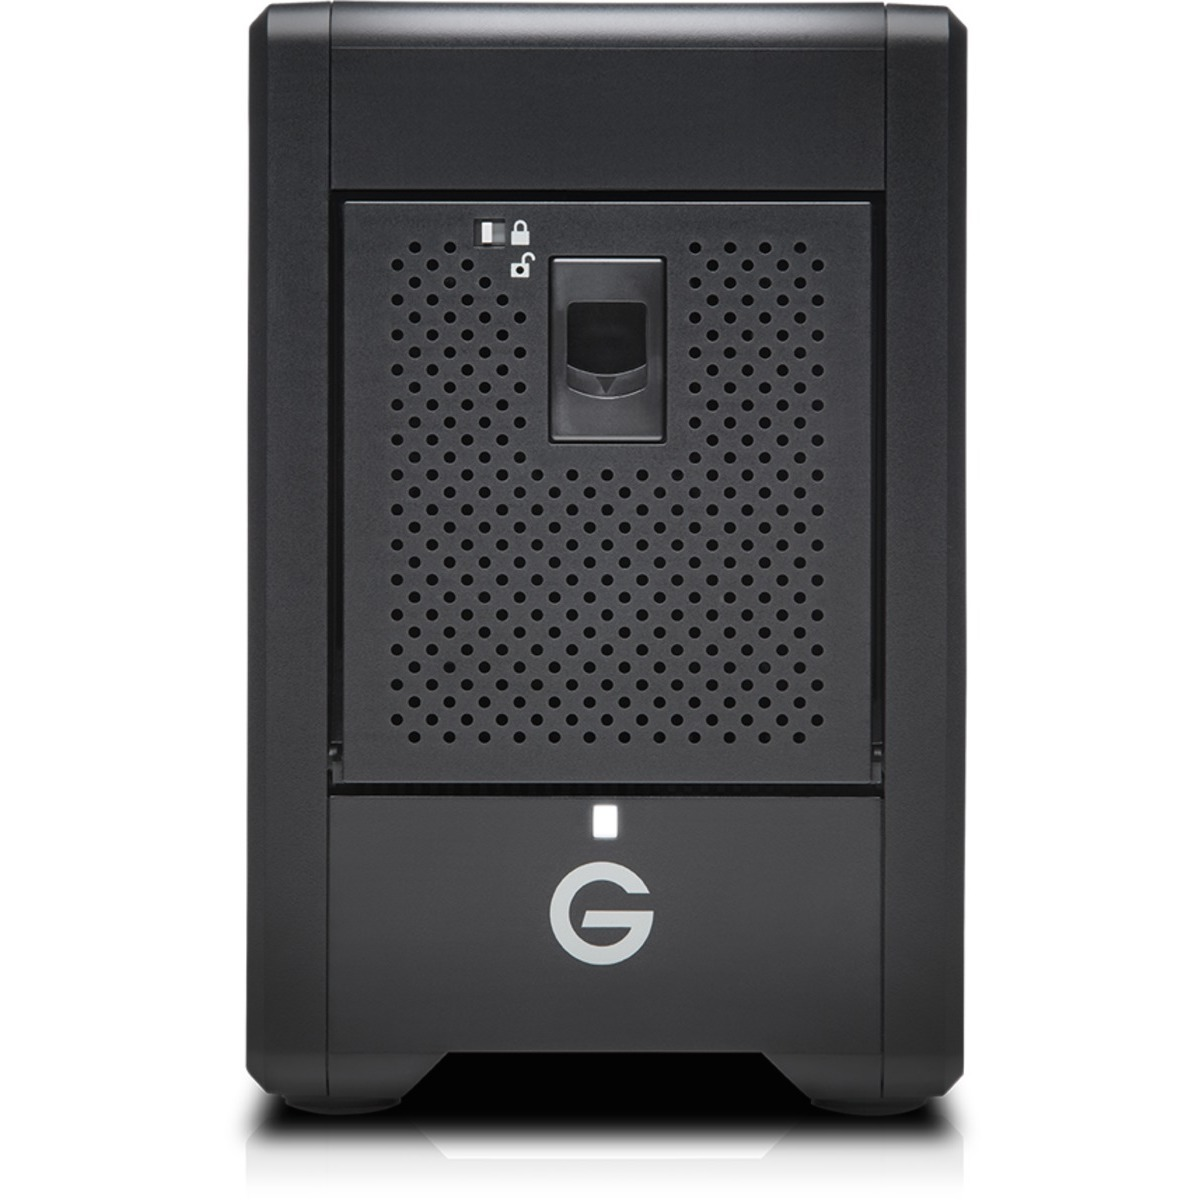 buy G-Technology G-SPEED Shuttle Thunderbolt 3 Desktop DAS - Direct Attached Storage Device Burn-In Tested Configurations - nas headquarters buy network attached storage server device das new raid-5 free shipping usa spring inventory clearance sale happening now G-SPEED Shuttle Thunderbolt 3